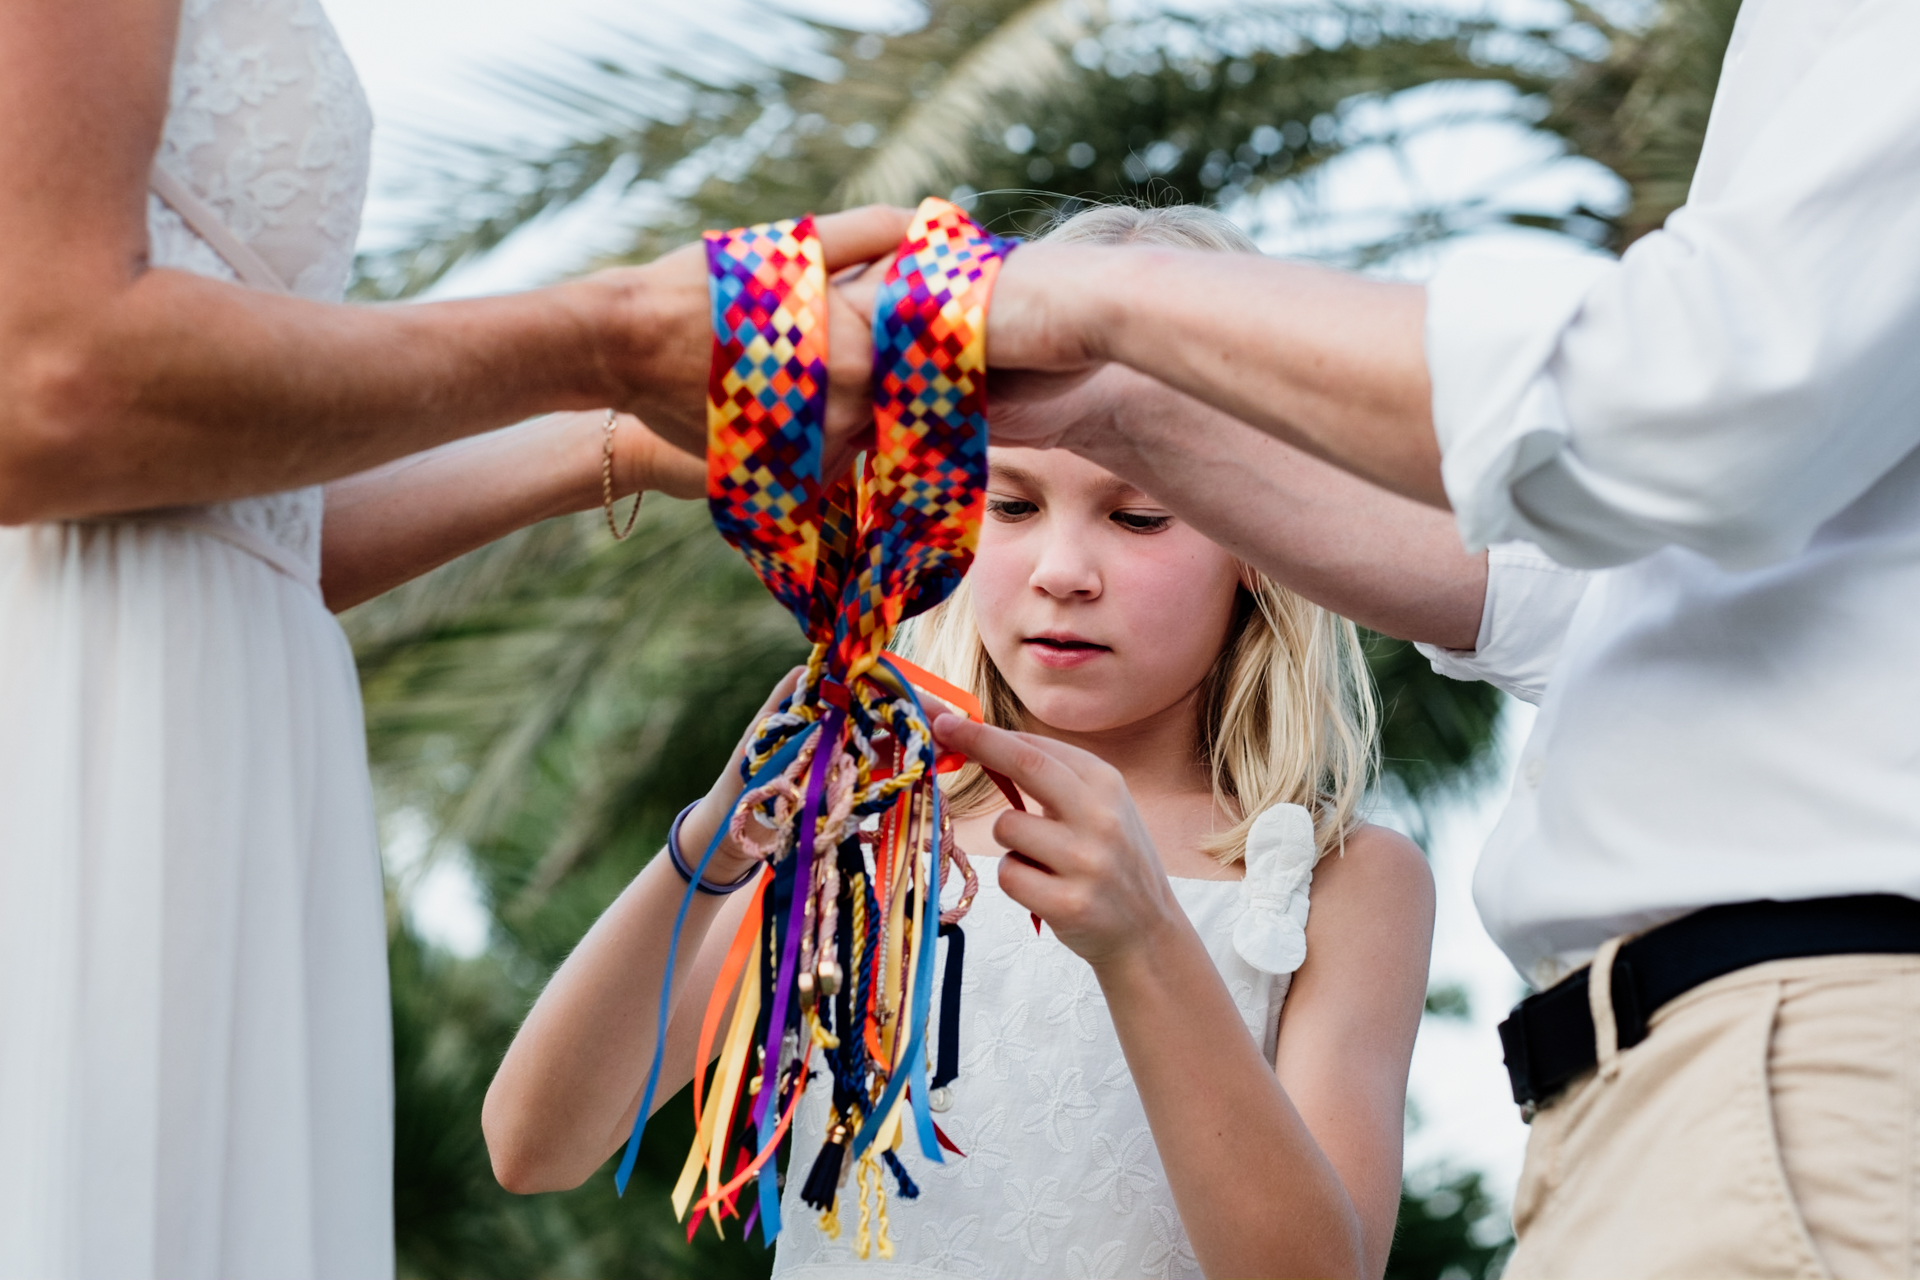 Dubai Elopement Ceremony Photography | A traditional hand-fasting ceremony